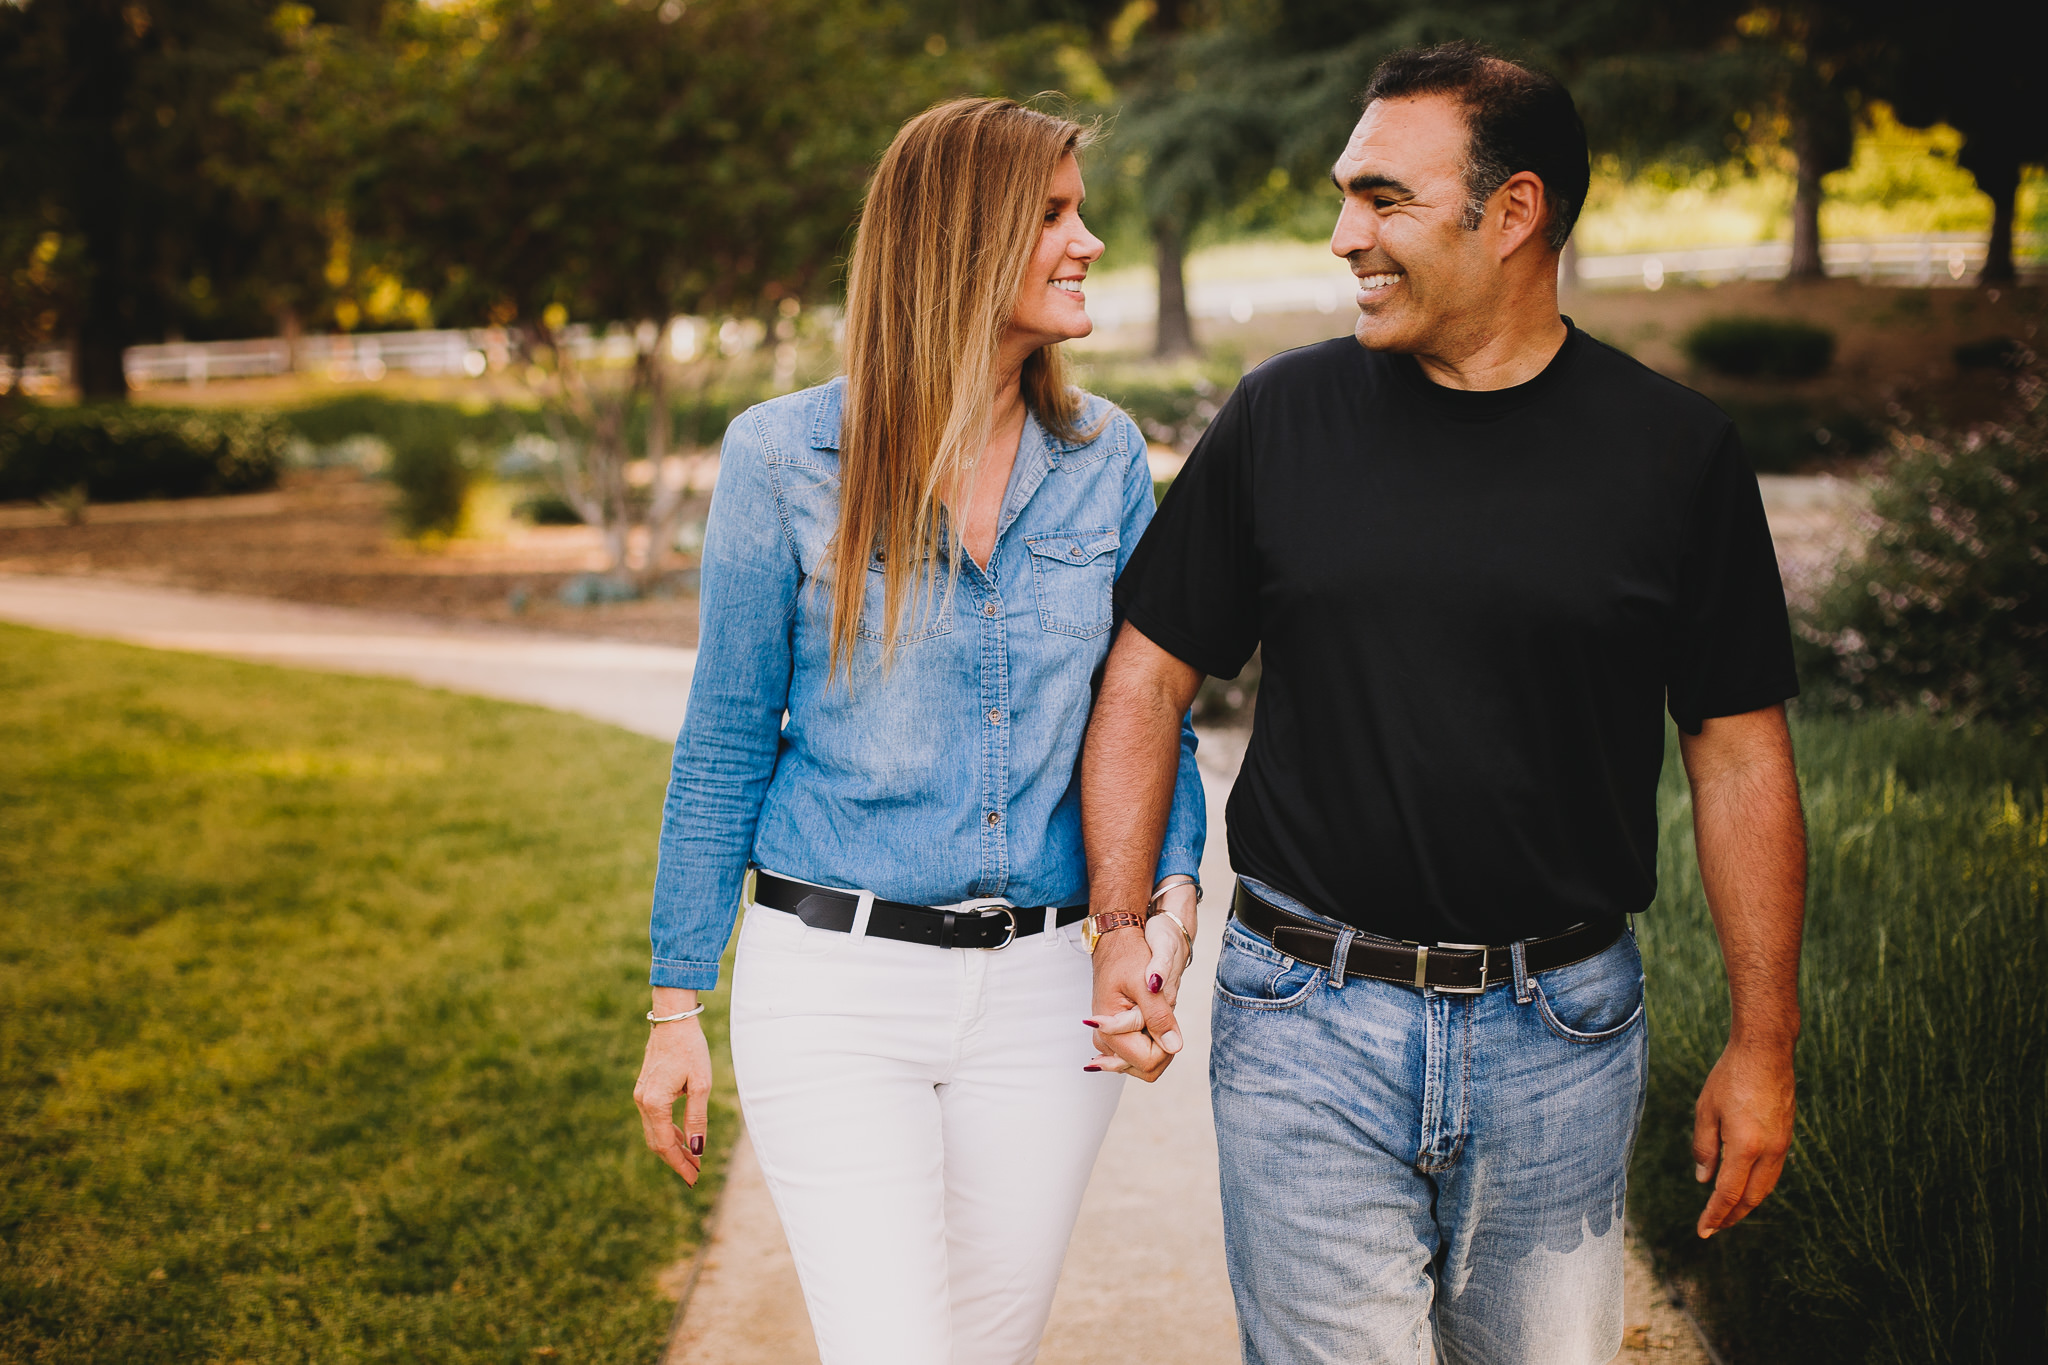 Archer Inspired Photography Los Angeles Orange County Long Beach Wedding Engagement Session Affordable Best Rated Lifestyle Documentary Photographer Robin and Ivan-63.jpg